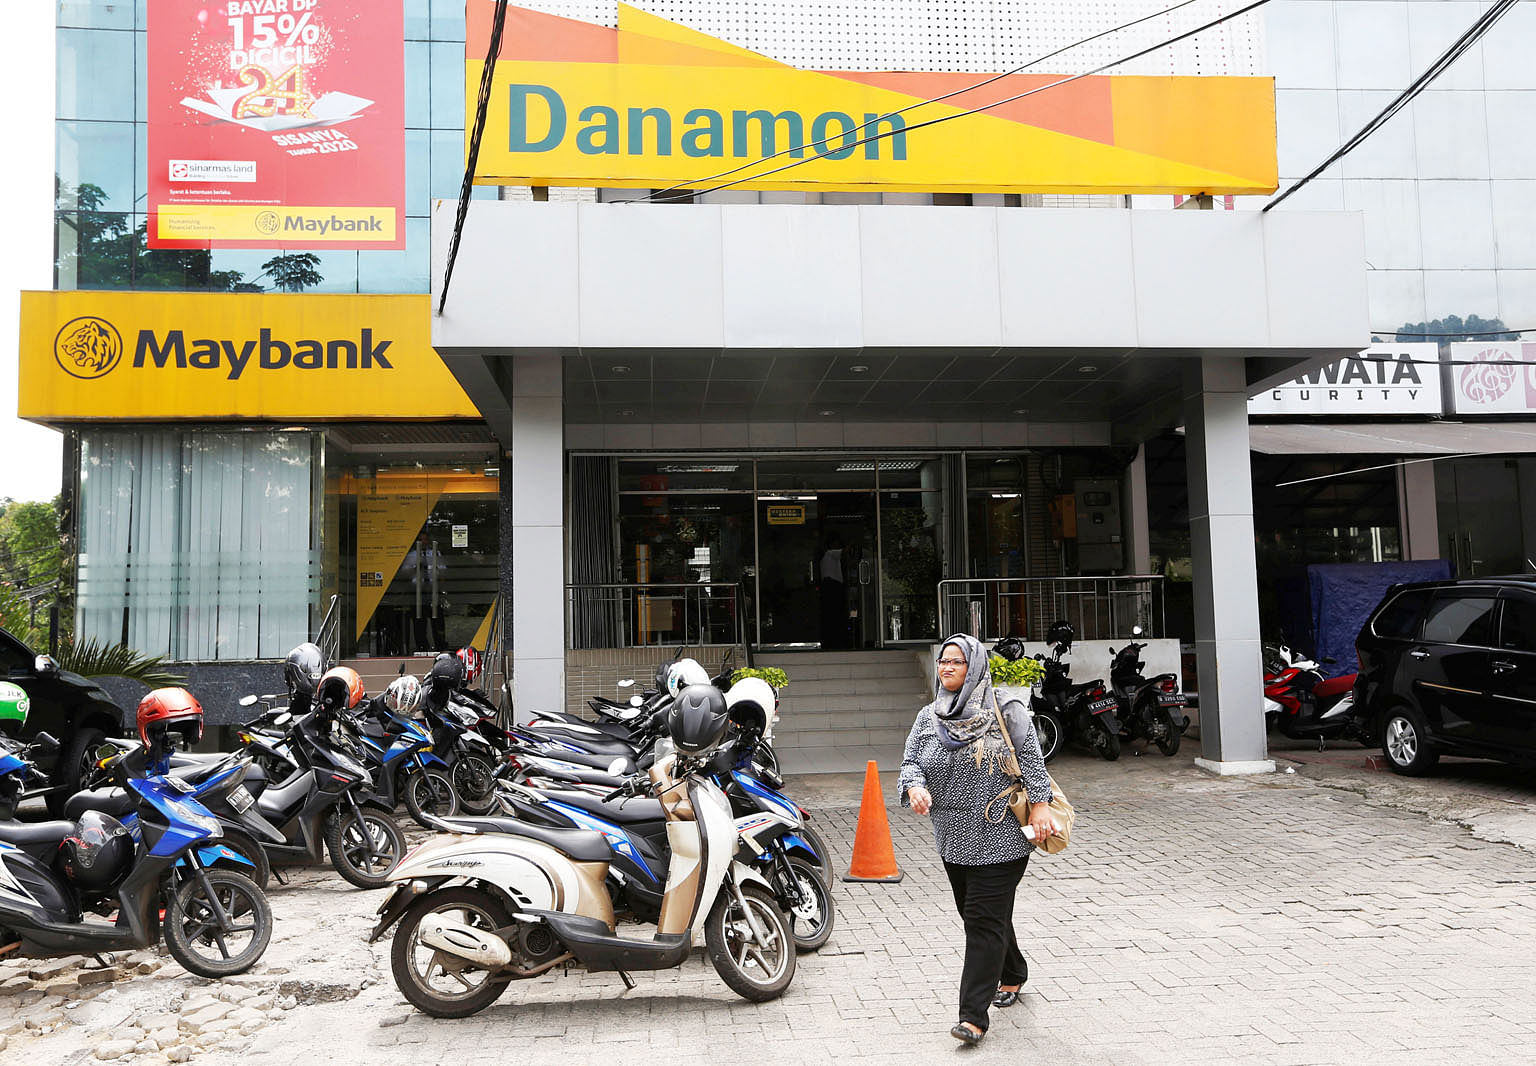 A Bank Danamon branch in Jakarta, Indonesia. Temasek Holdings plans to sell its 73.8 per cent stake in Bank Danamon to Japan's MUFG.